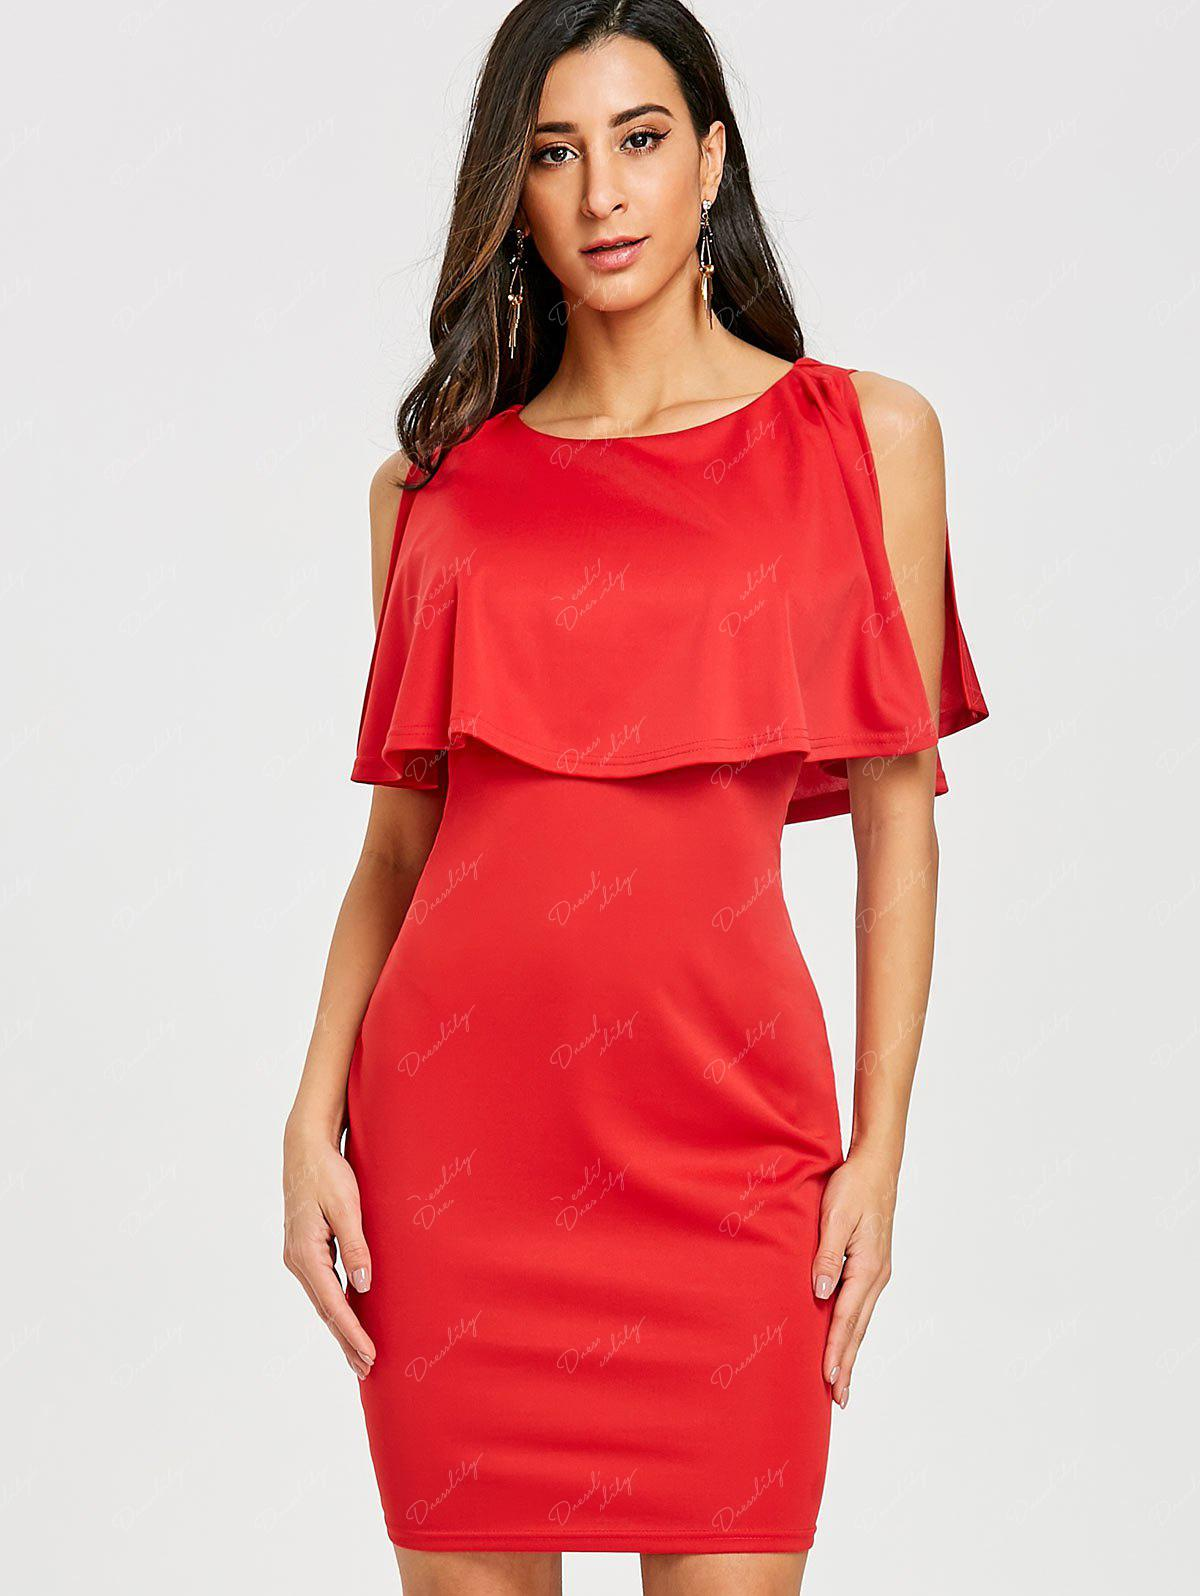 Scoop Neck Caplet Dress - RED M